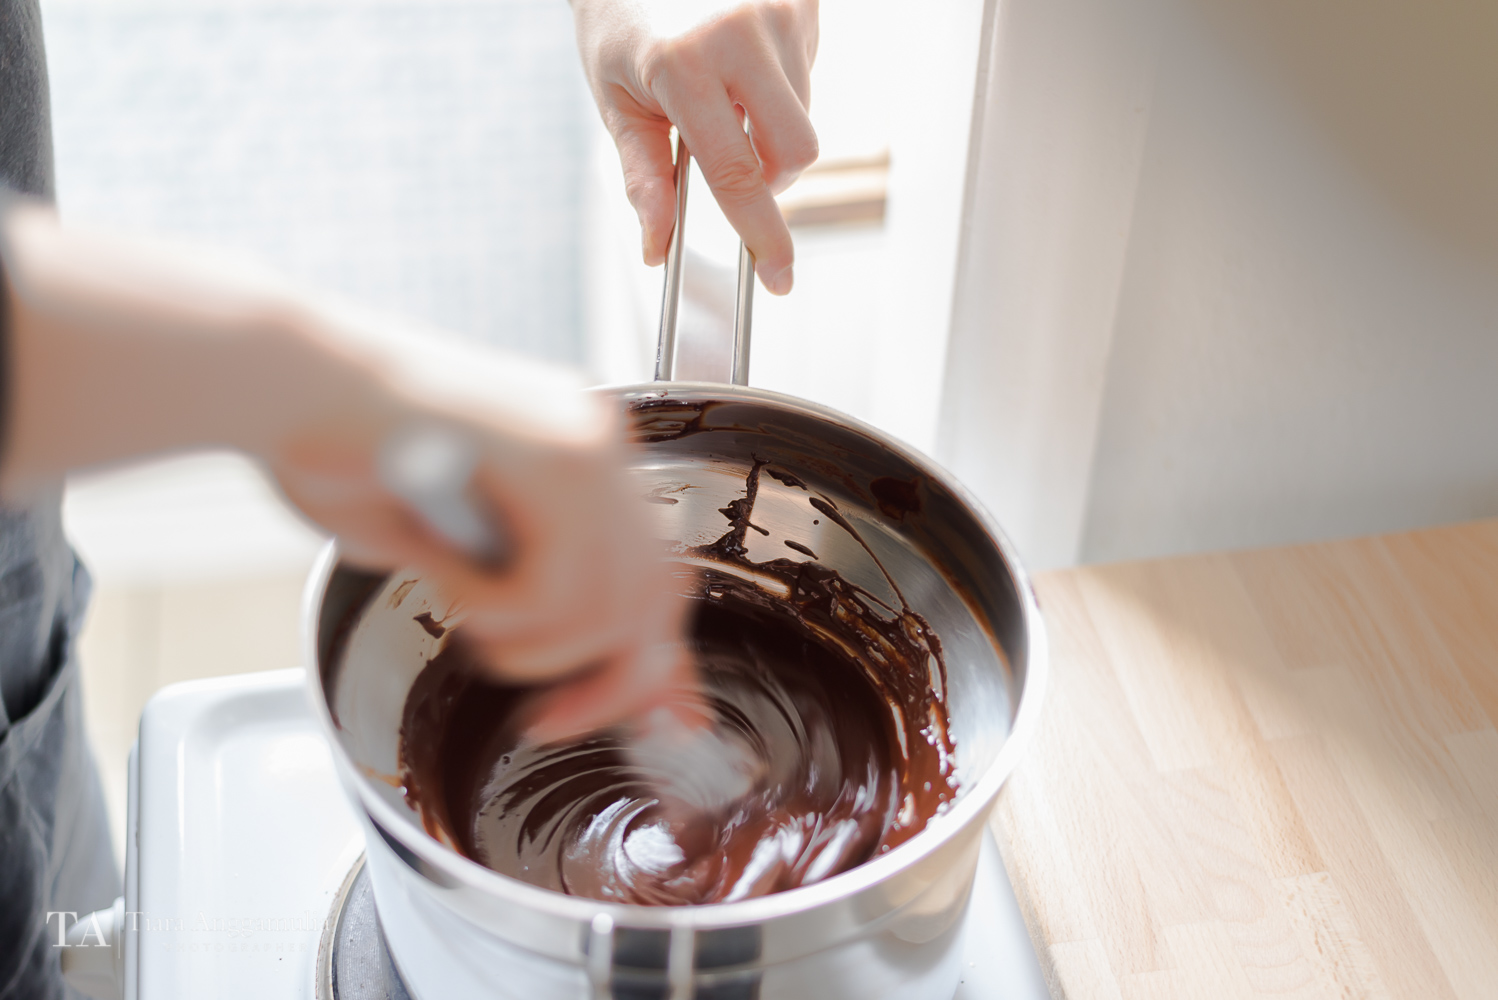 Stirring melted dark chocolate on a stove.